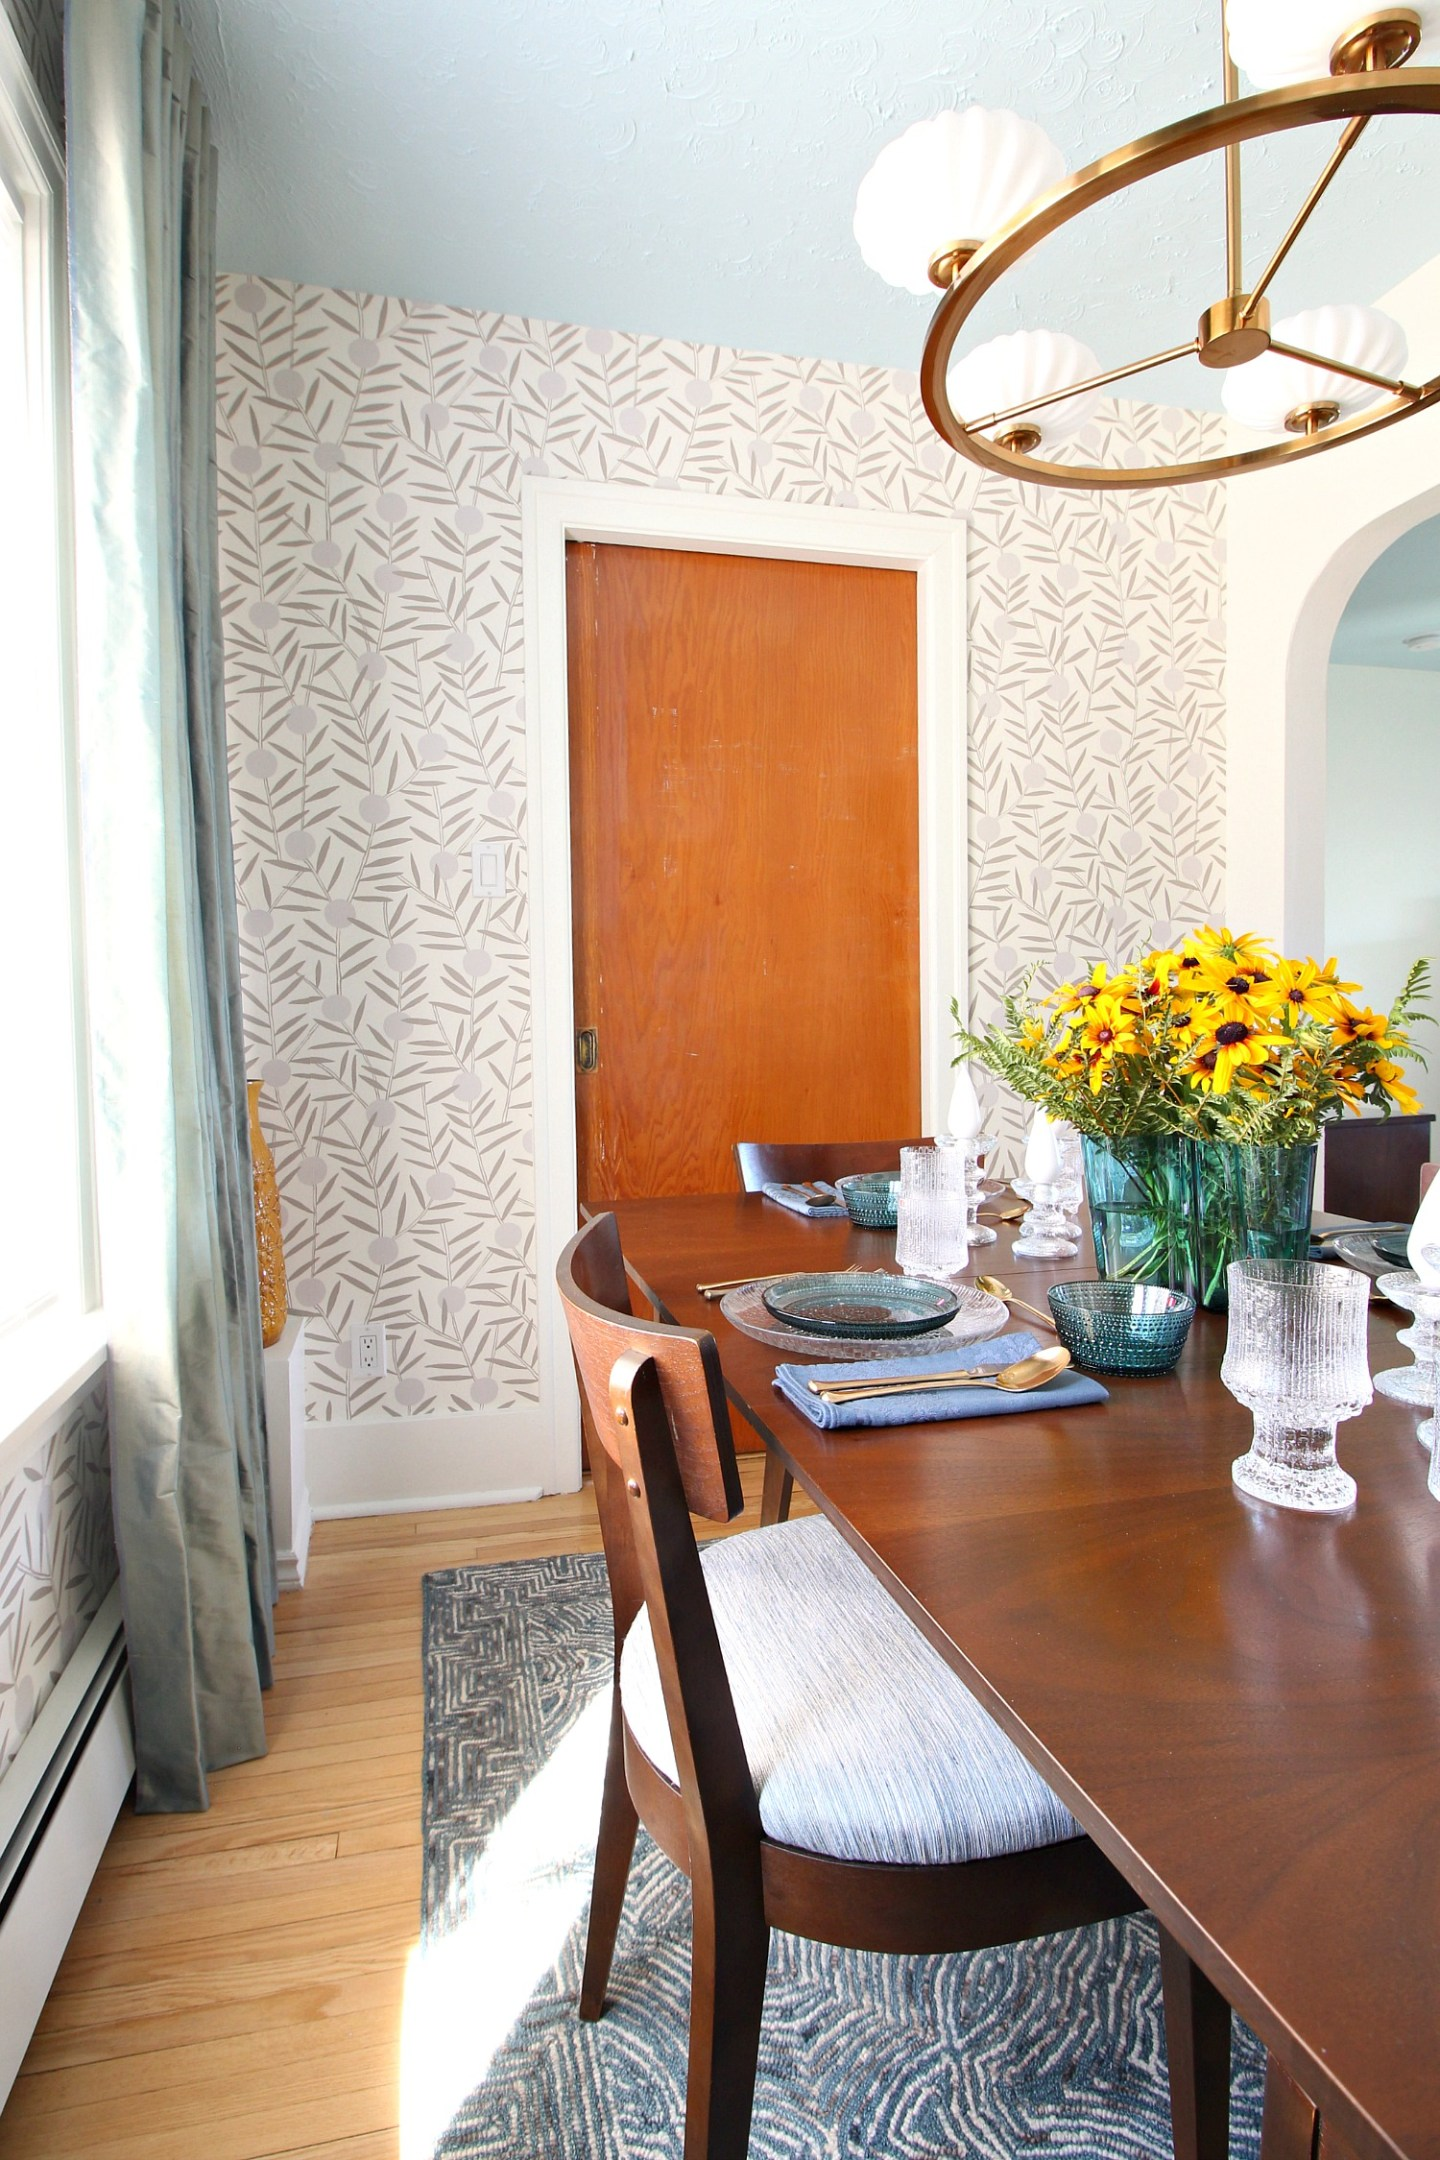 How to Hang Hygge & West Wallpaper